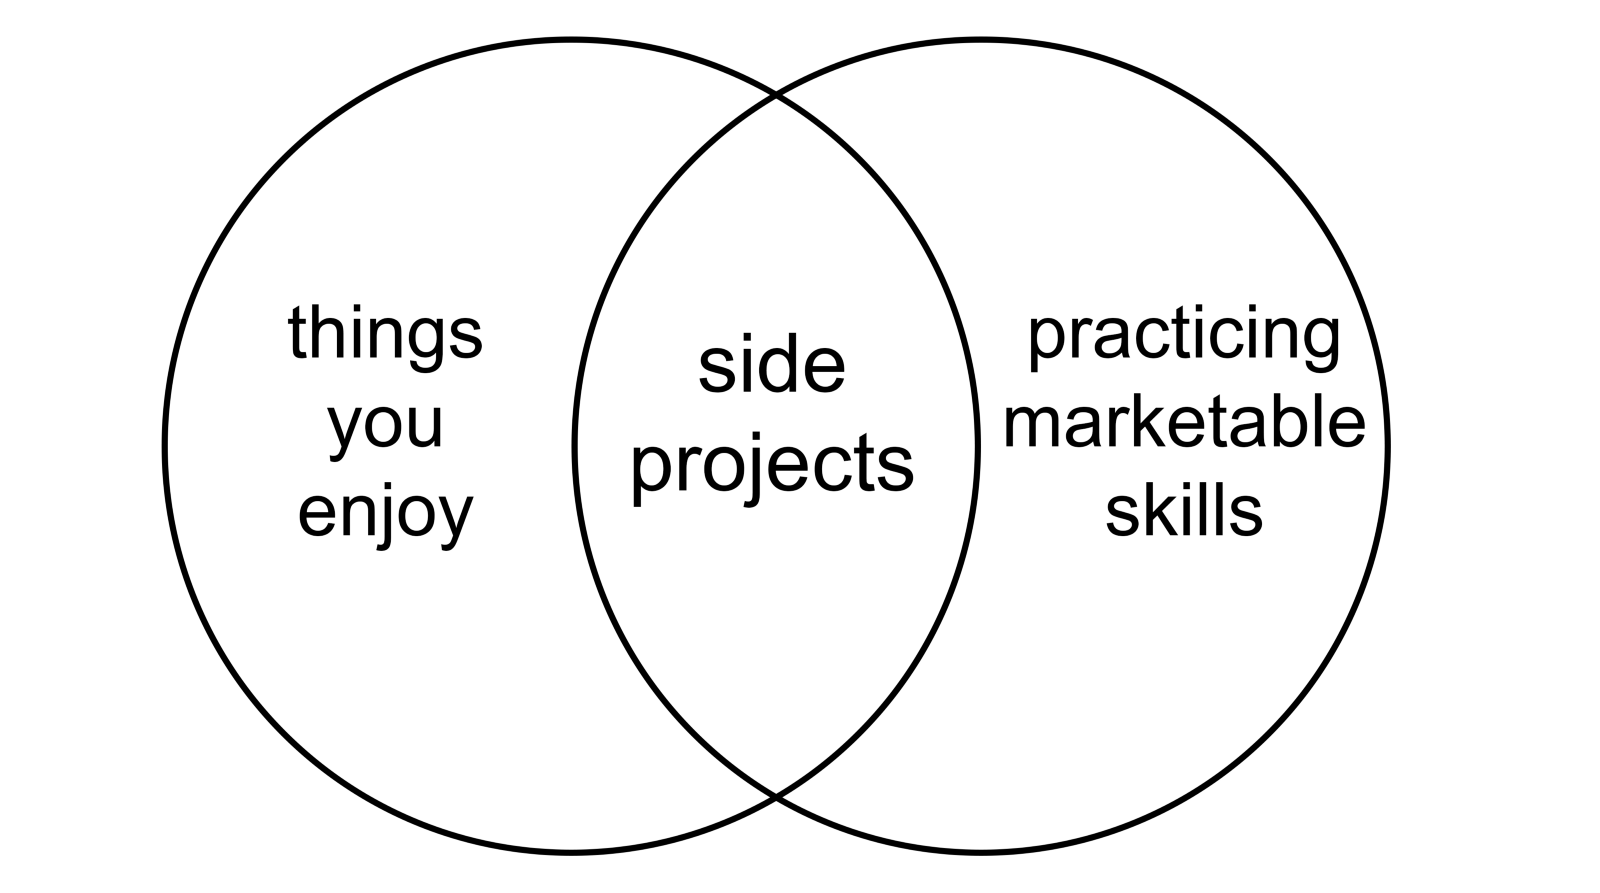 hight resolution of side projects work best when they live at the interaction of things you enjoy and things that help you practice a marketable skill in venn diagram form